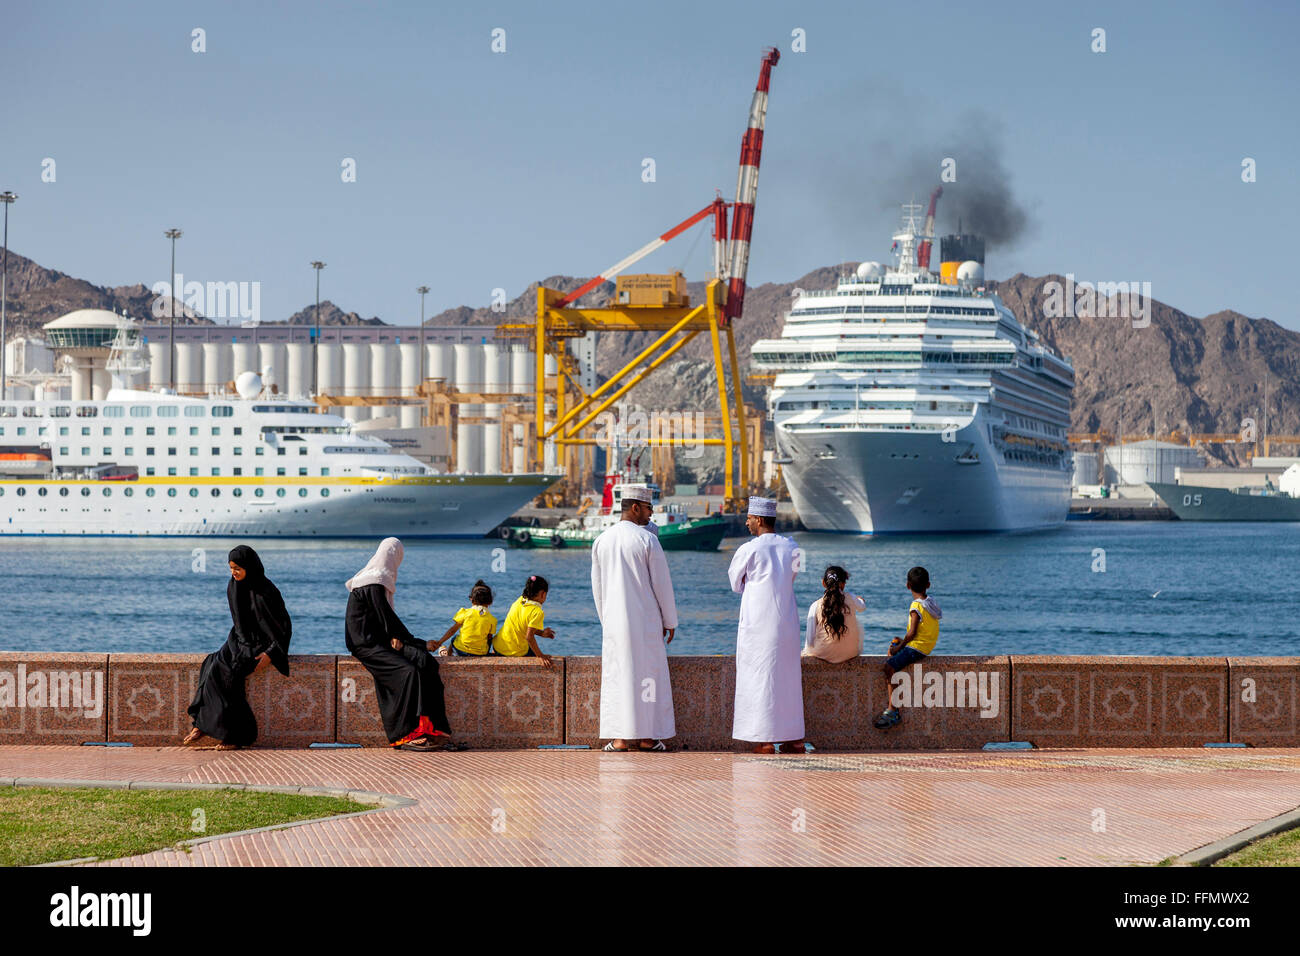 An Omani Family Watch The Cruise Ships Leaving The Port At Muttrah, Muscat, Sultanate Of Oman - Stock Image